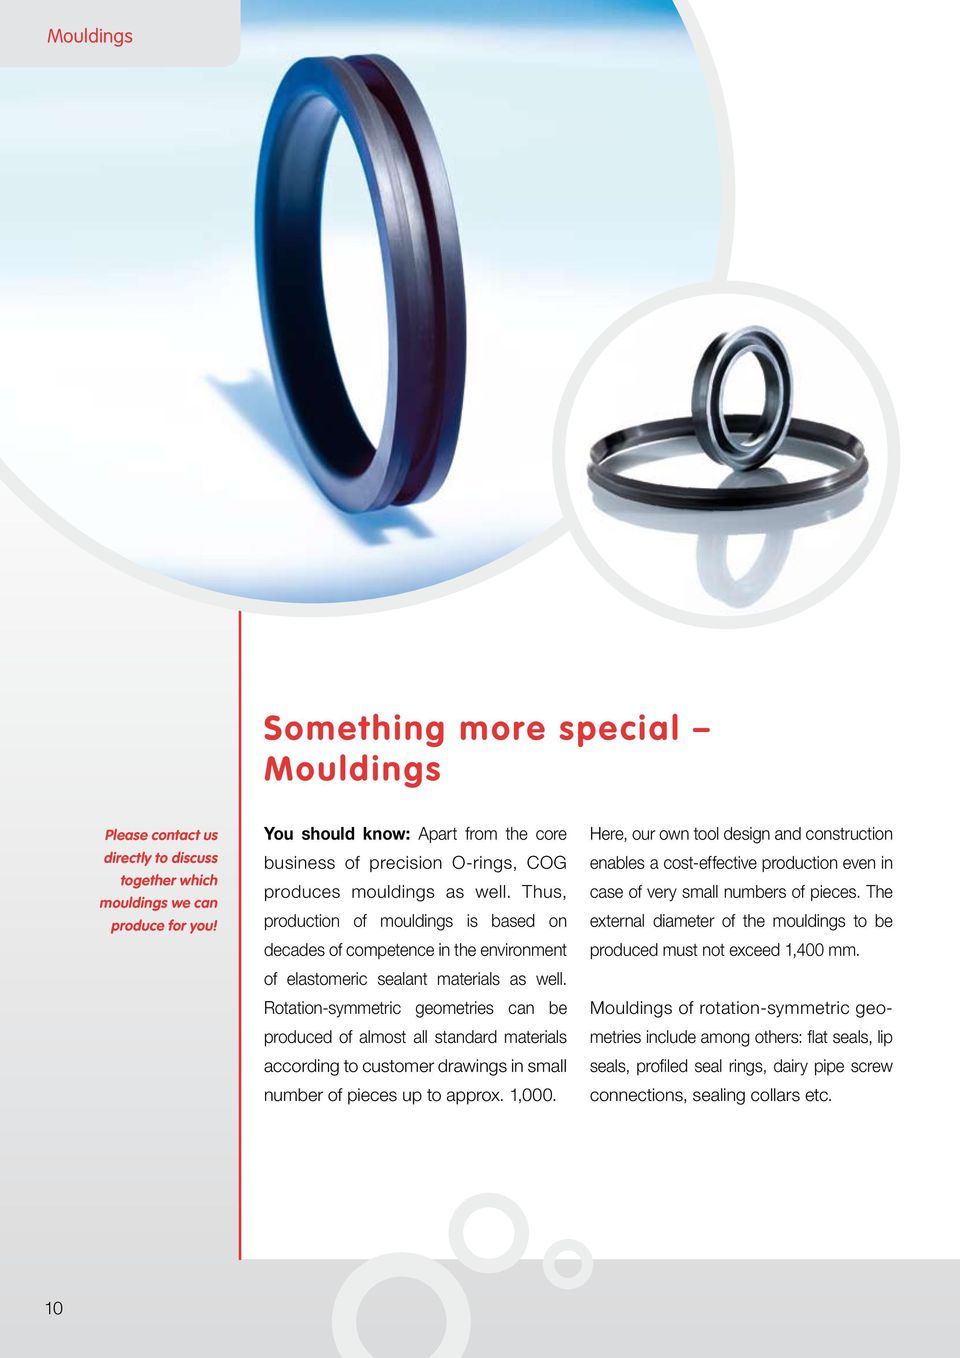 Thus, production of mouldings is based on decades of competence in the environment of elastomeric sealant materials as well.